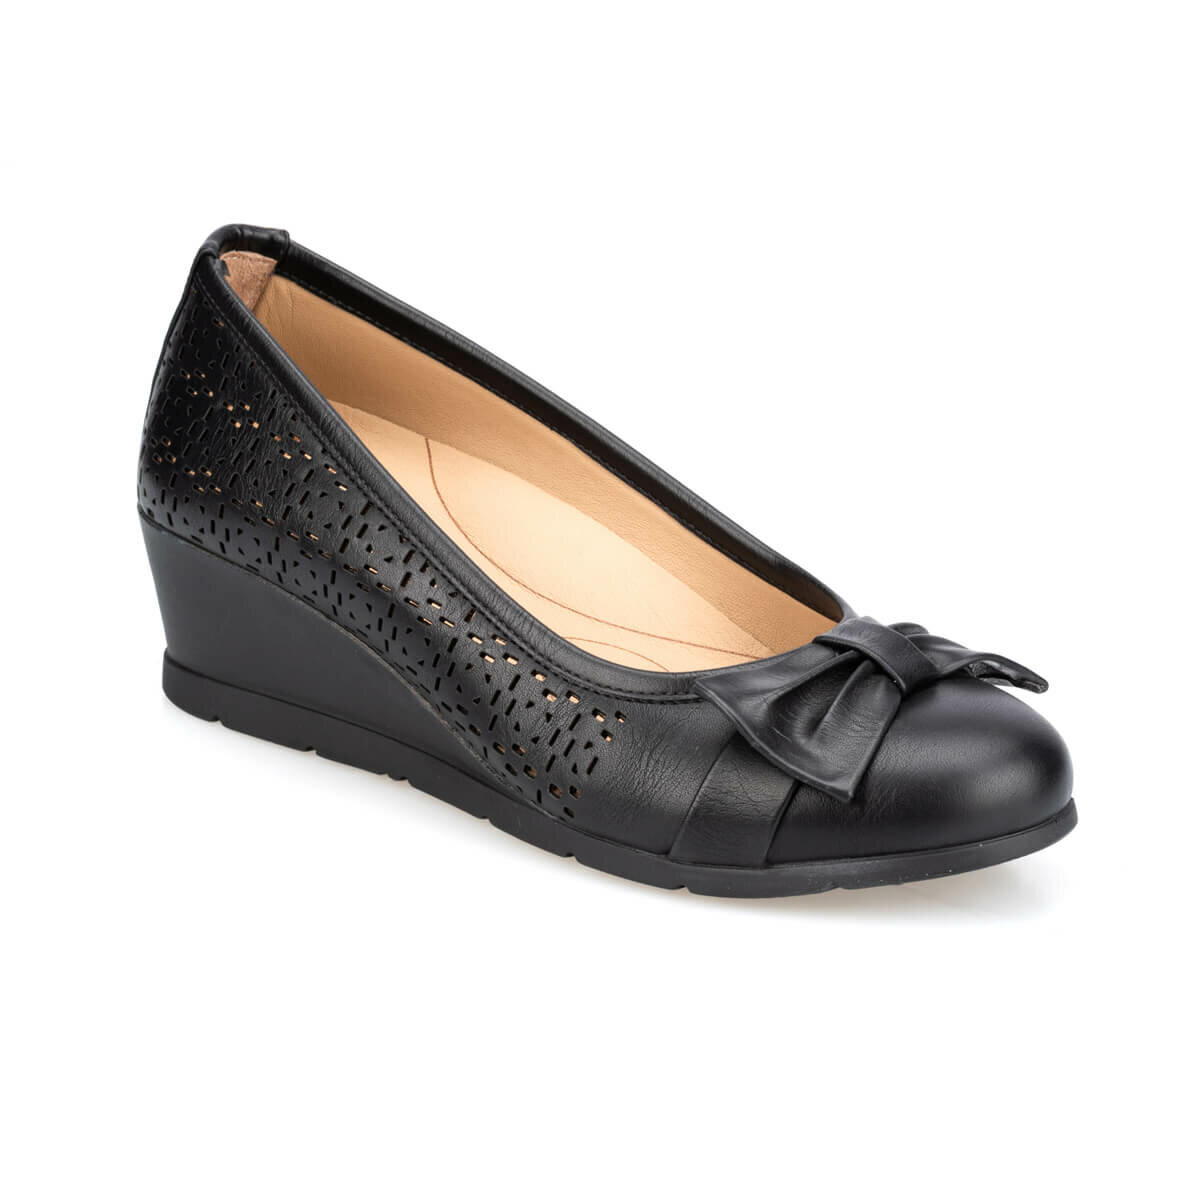 FLO 91. 100655.Z Black Women Shoes Polaris 5 Point